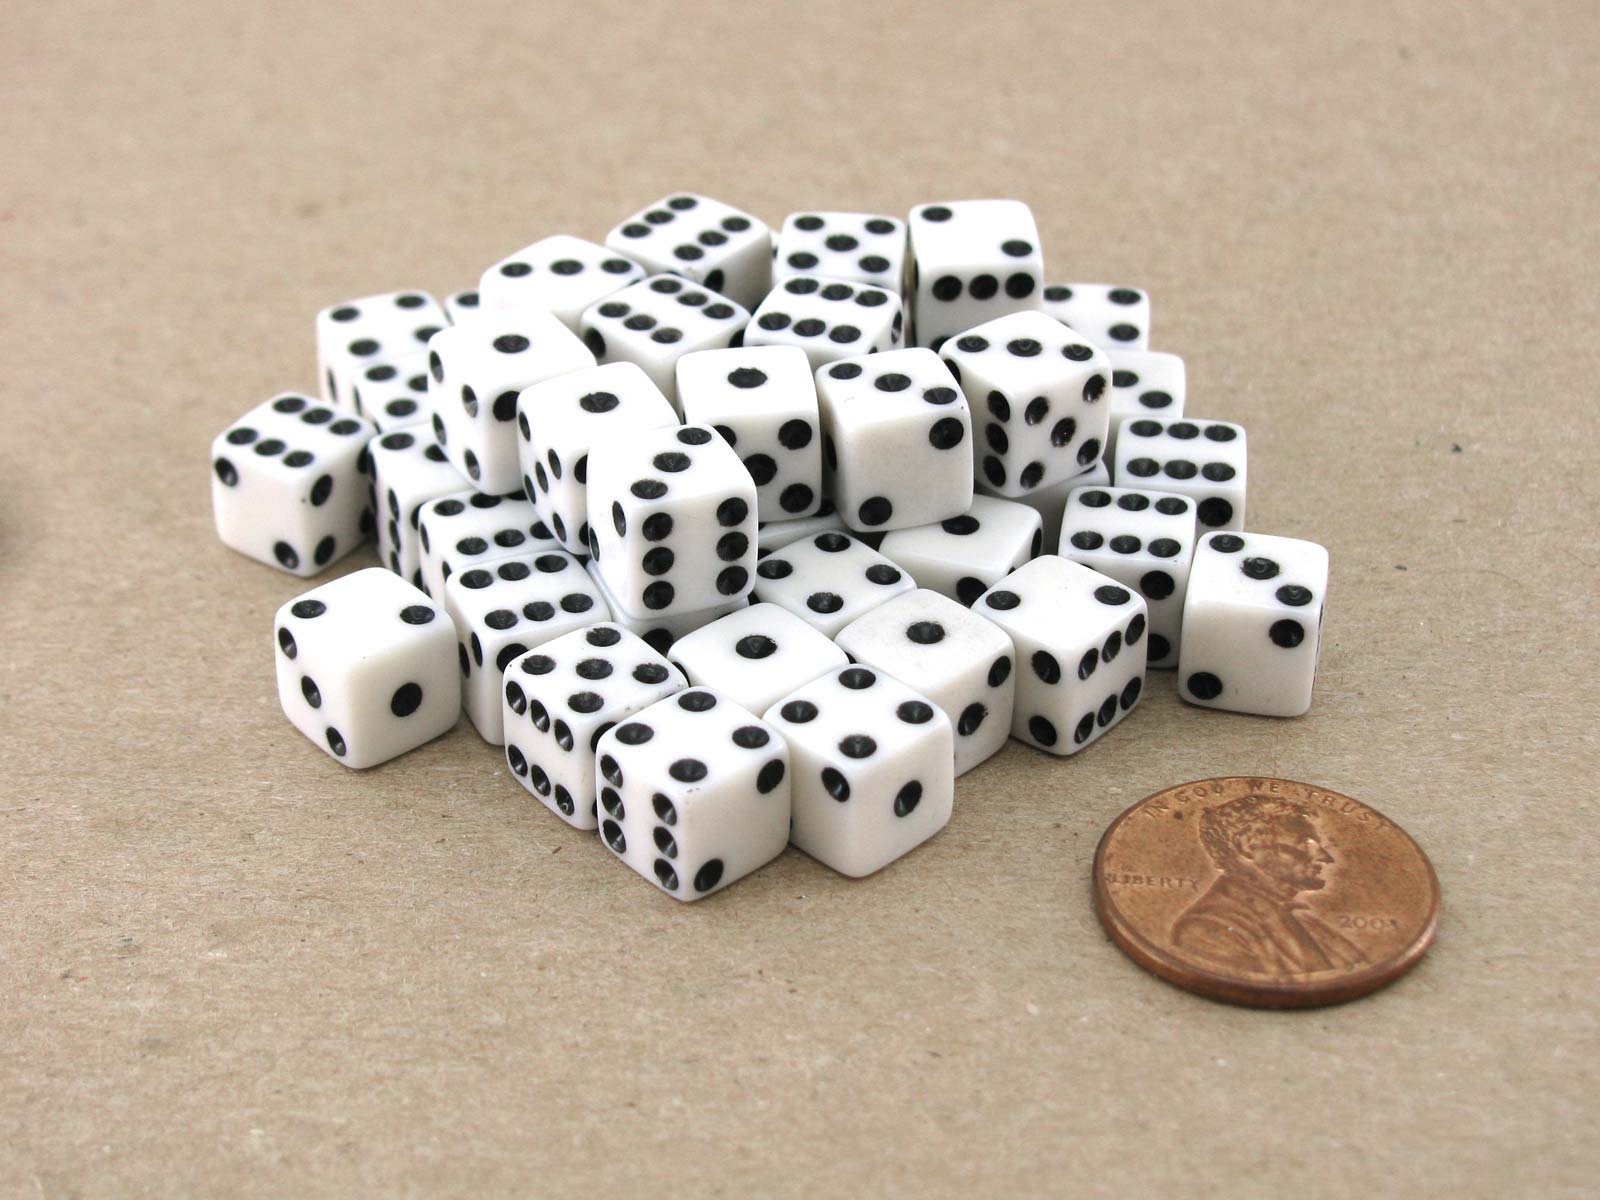 Set of 50 8mm Six-Sided D6 Small Square-Edge Dice - White with Black Pips